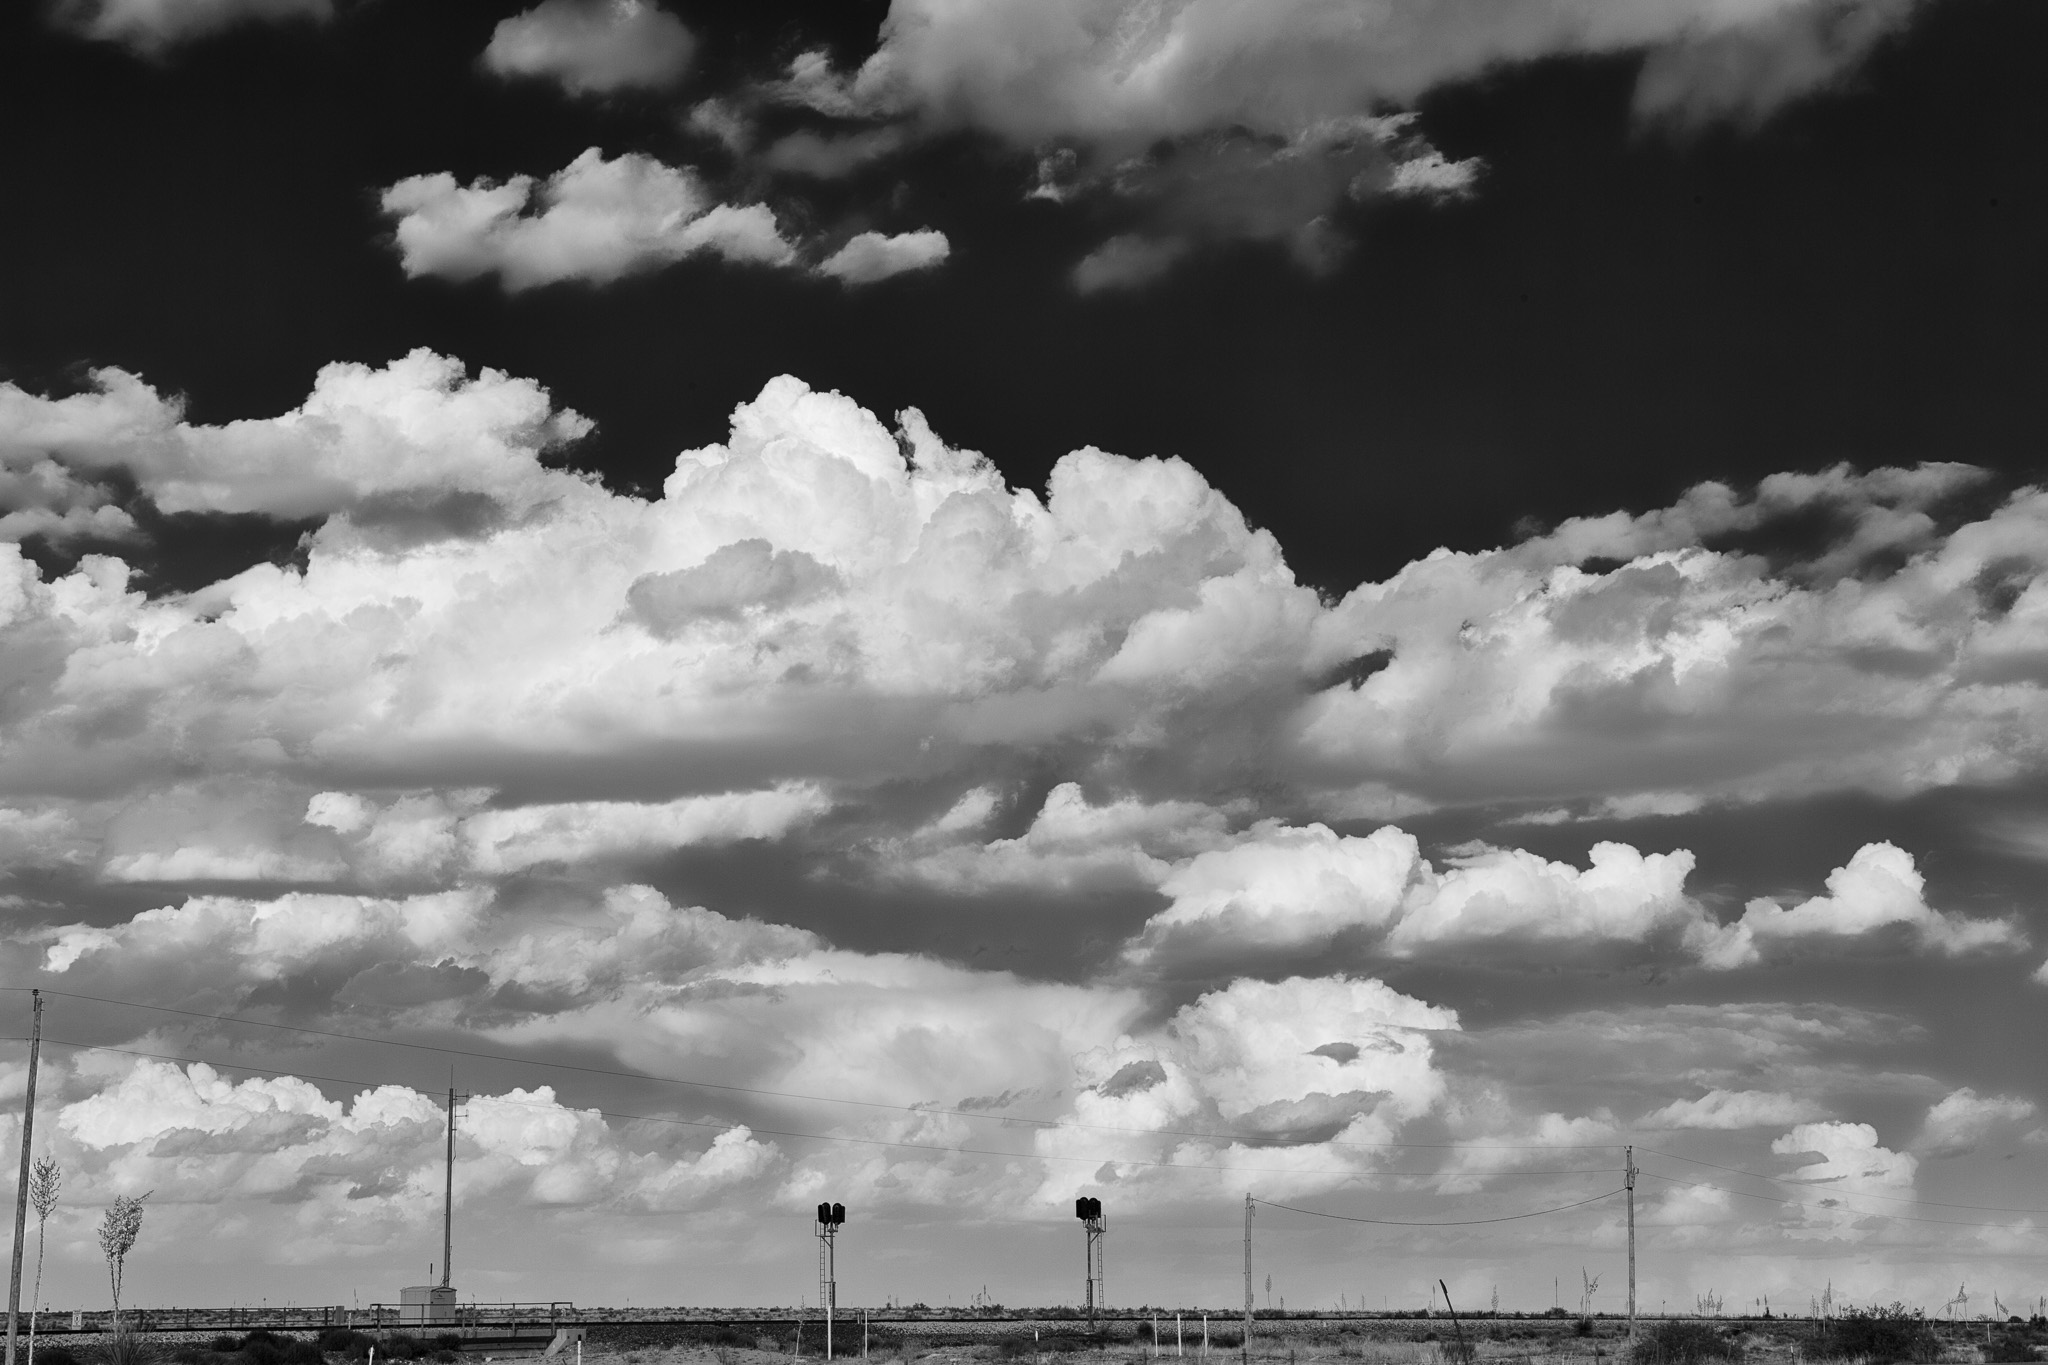 Waiting for the Train / South of Las Cruces